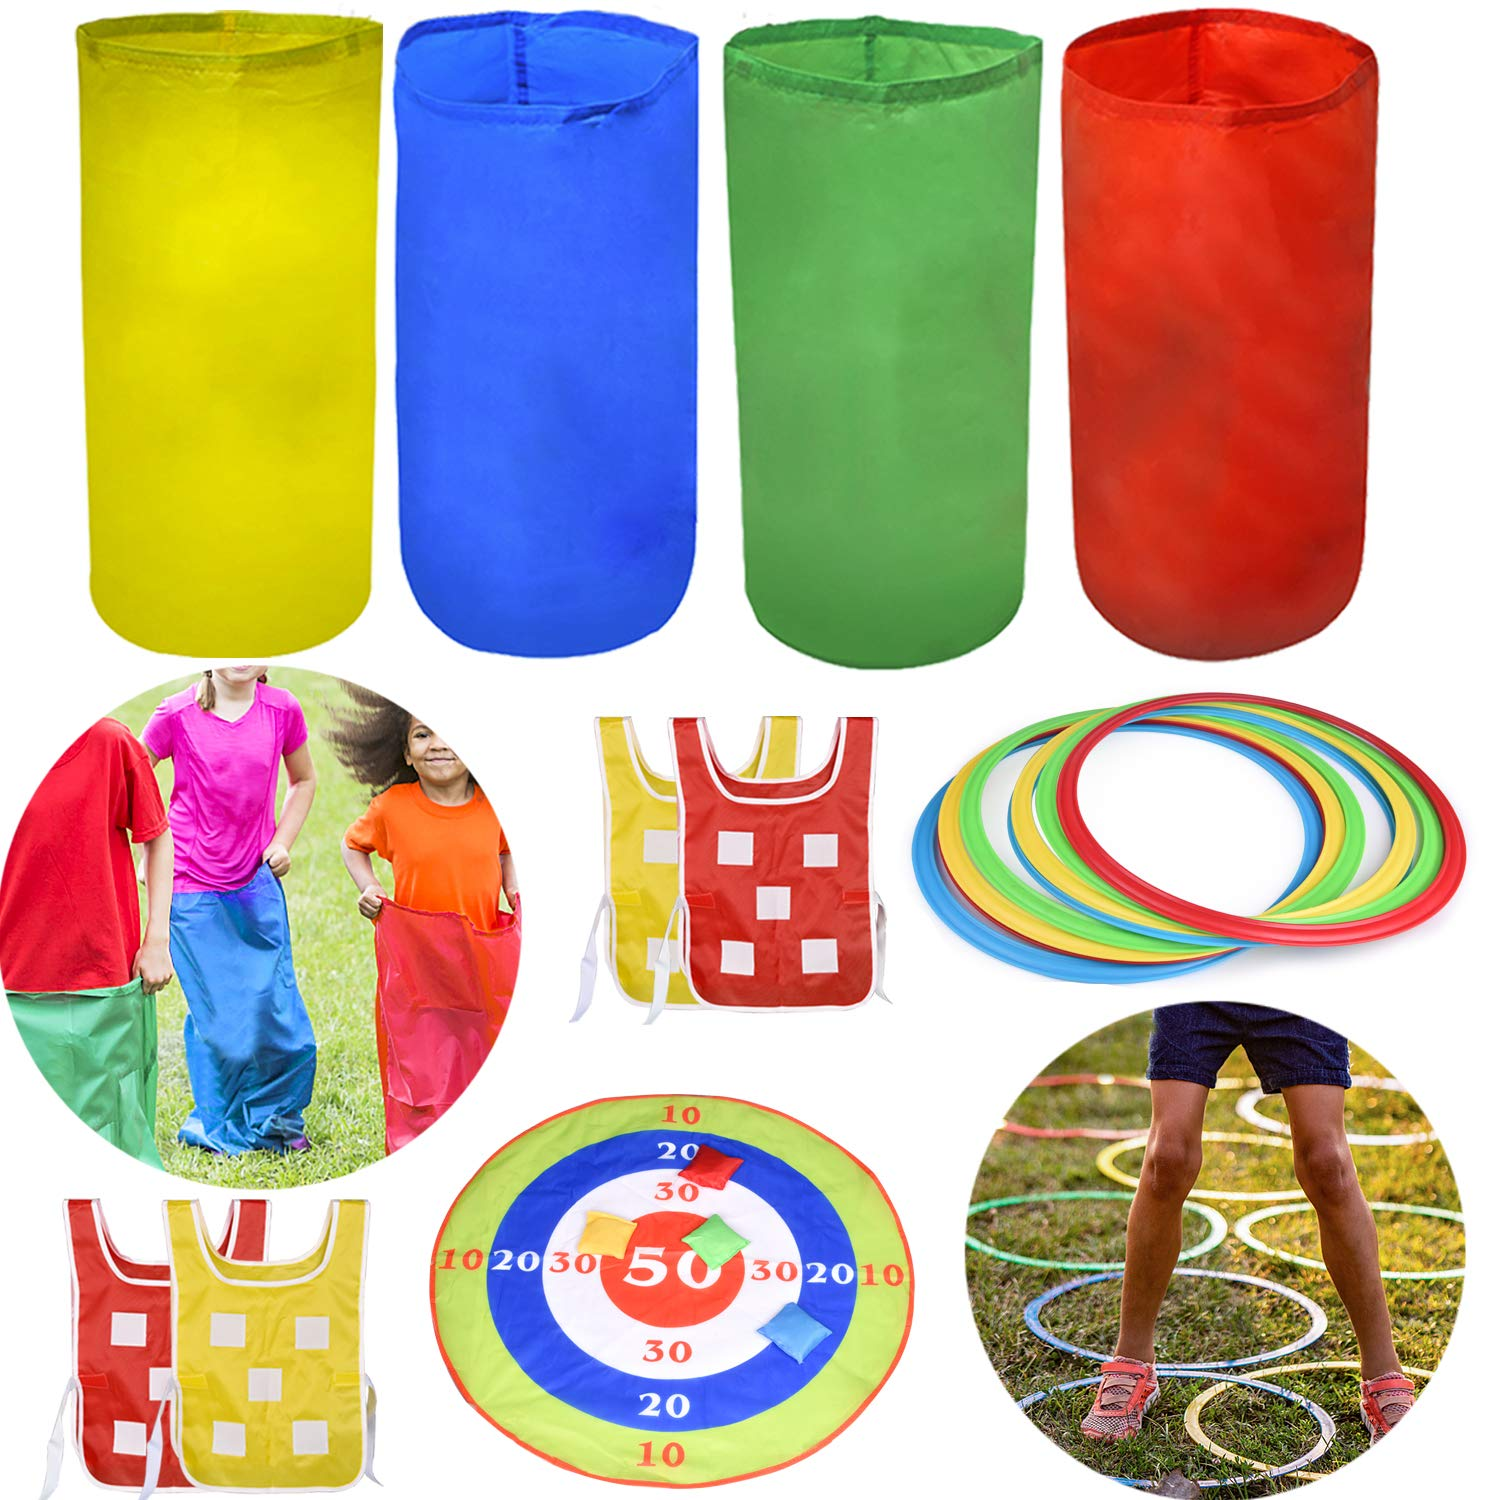 FUN LITTLE TOYS 4 Outdoor Lawn Games Includes 4 Potato Sack Race Bags, 8 Hopscotch Rings, Toss Game Set with 4 Bean Bags and 4 Chasing Race Game Vests, Kids Outdoor Toys Birthday Party Games